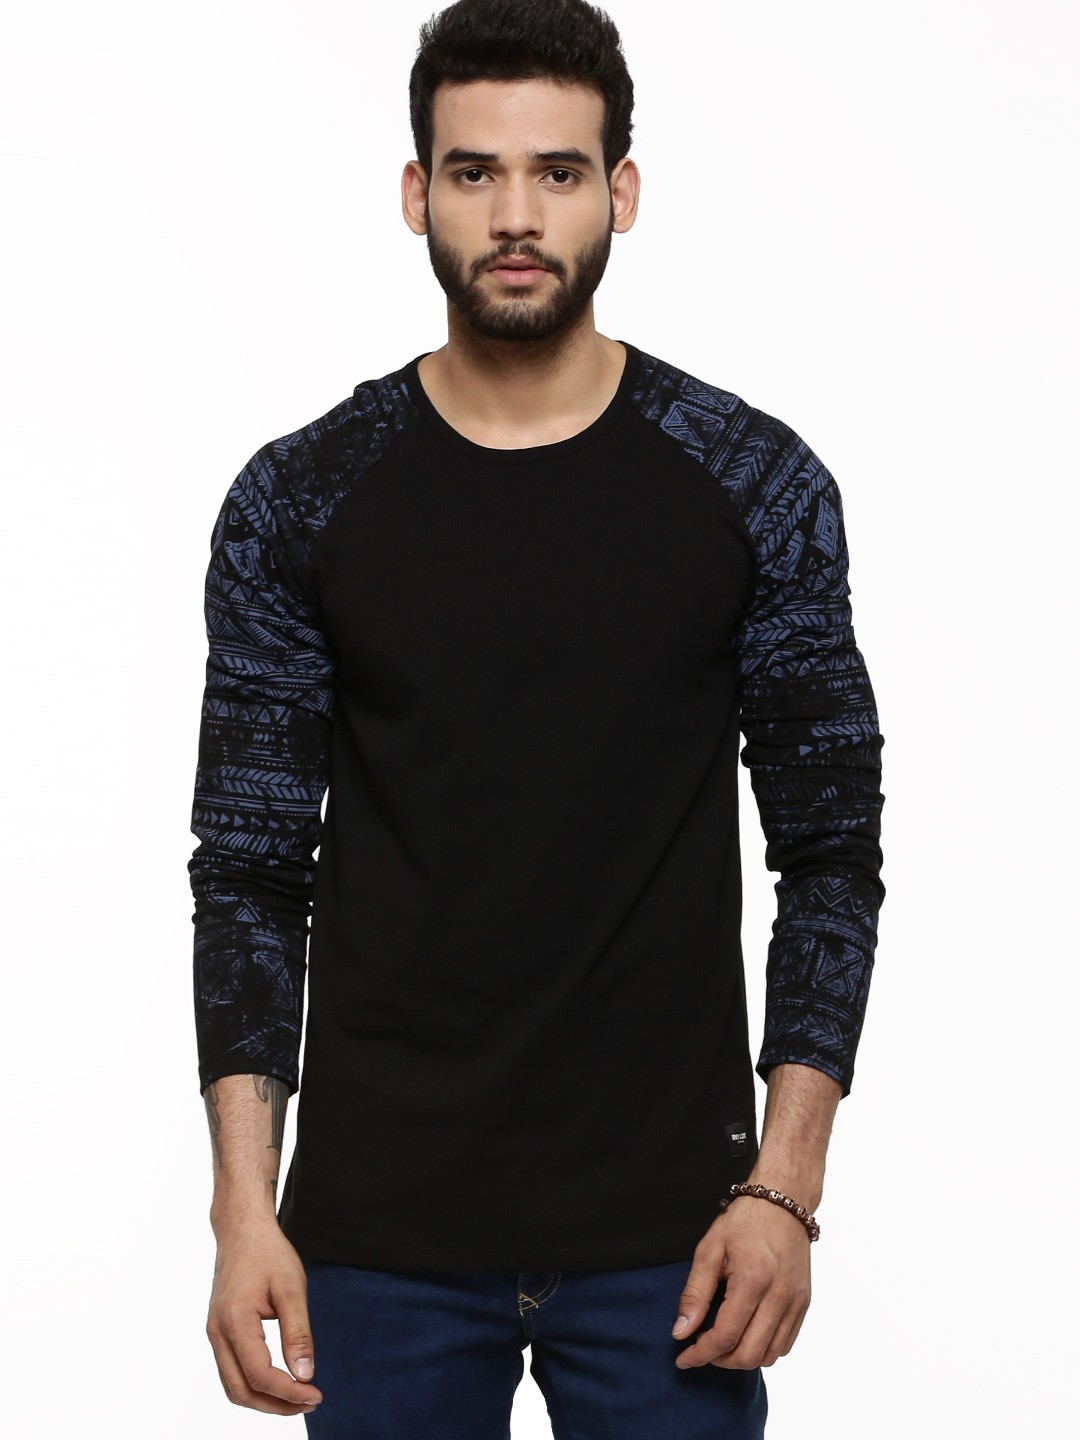 Black t shirt buy online - Only Sons T Shirt With Aztec Print Sleeves